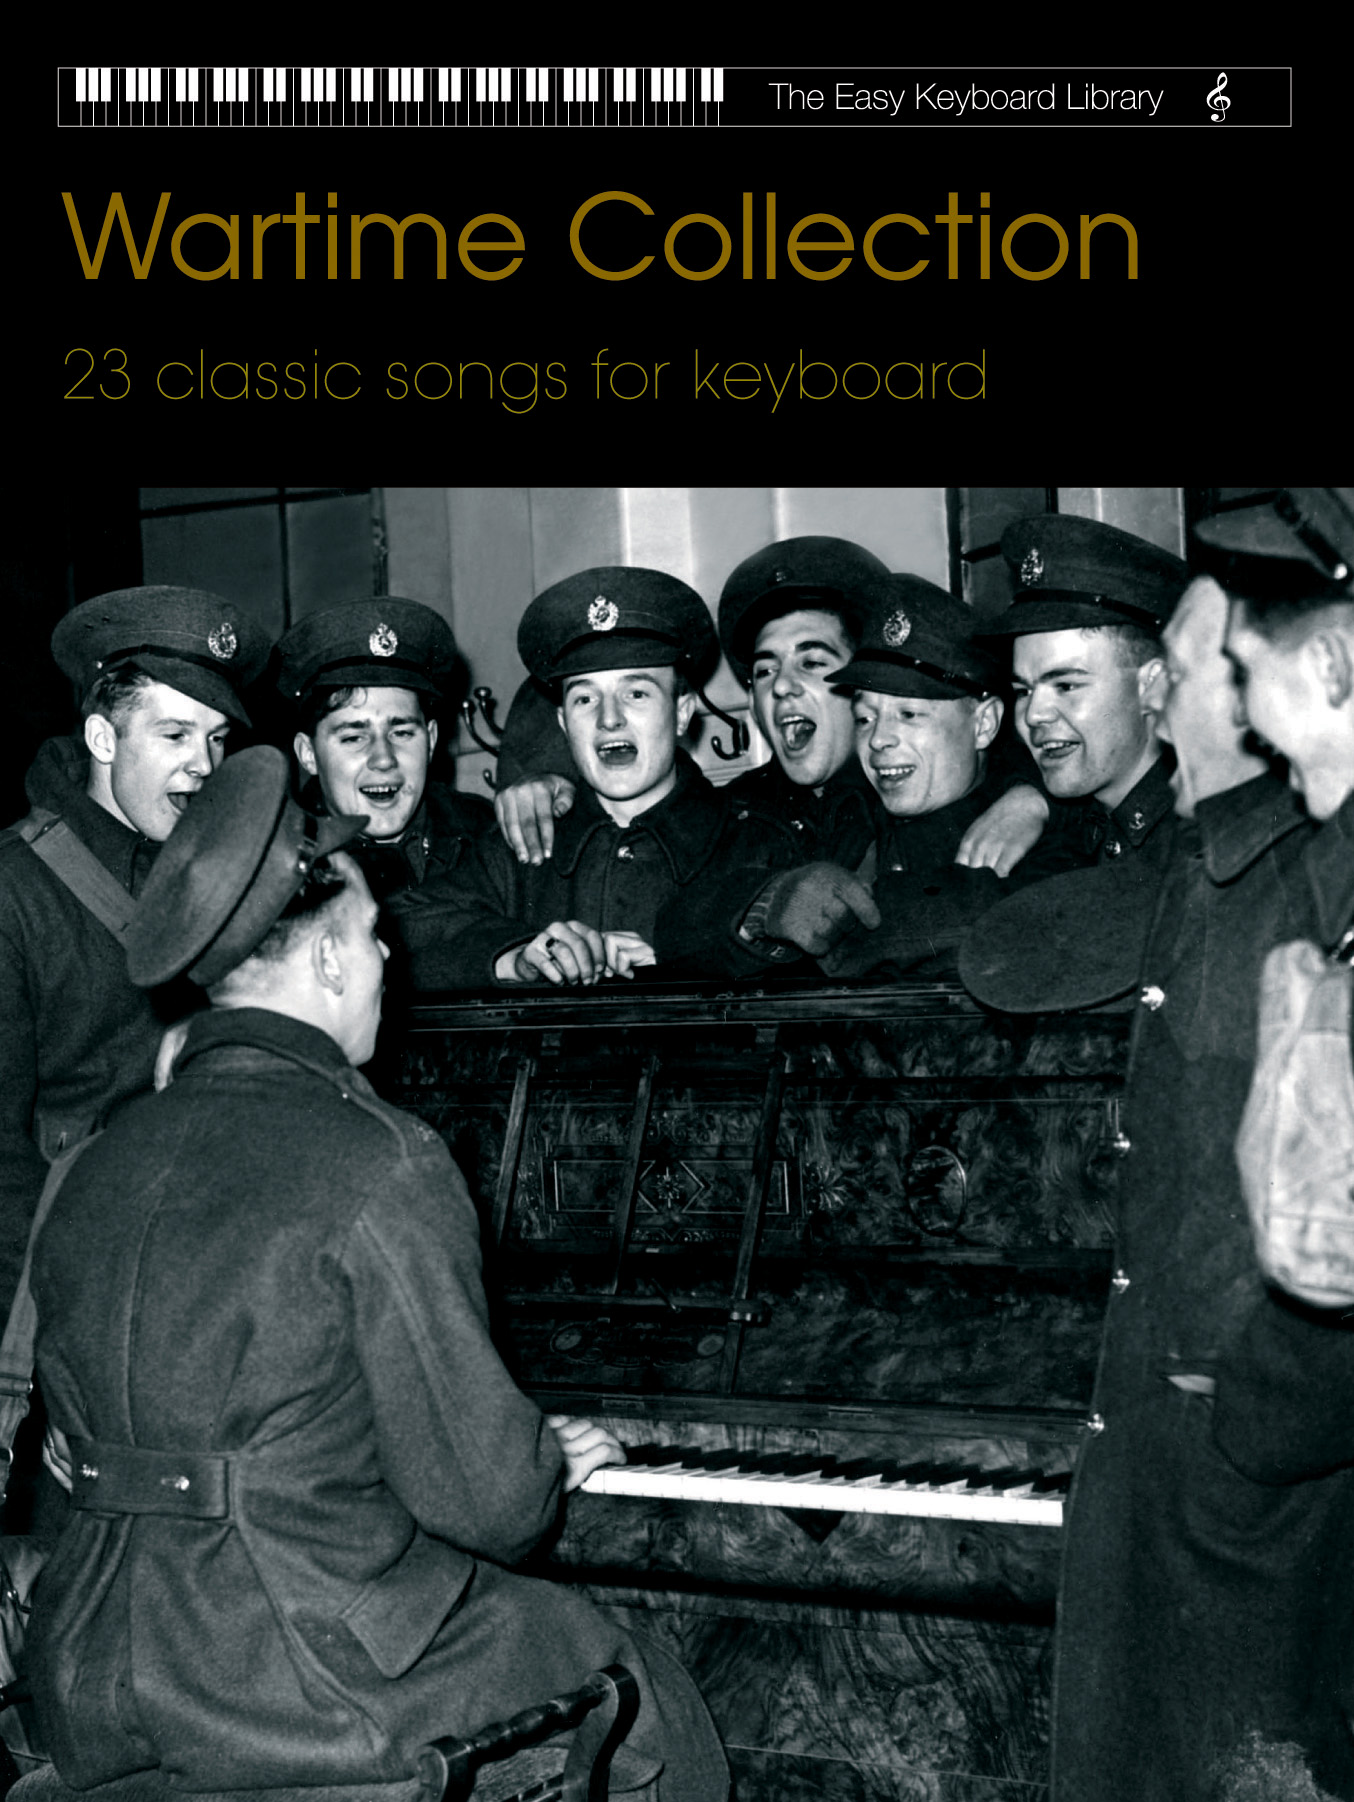 Various: Easy Keyboard Library: Wartime: Electric Keyboard: Mixed Songbook